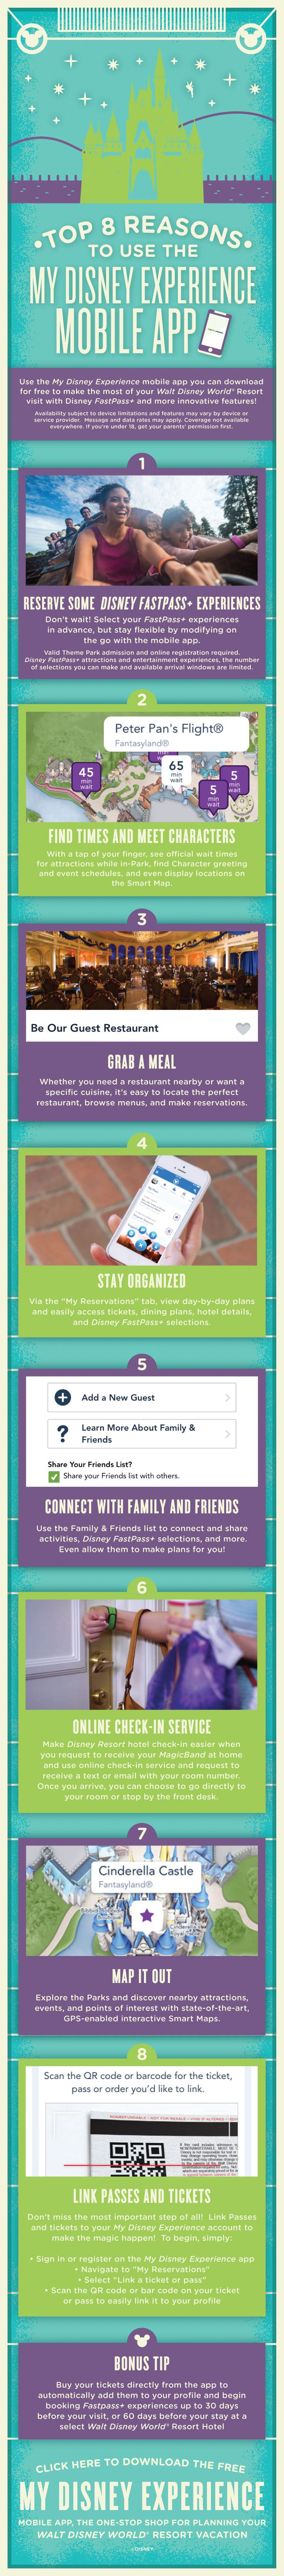 Make FastPass+ reservations, buy tickets, & plan your Walt Disney World family vacation on the go with the My Disney Experience app! Filled with handy features, our mobile app lets you view and update your plans, make dining reservations, search maps of all 4 theme parks, get real-time attraction wait times and more.